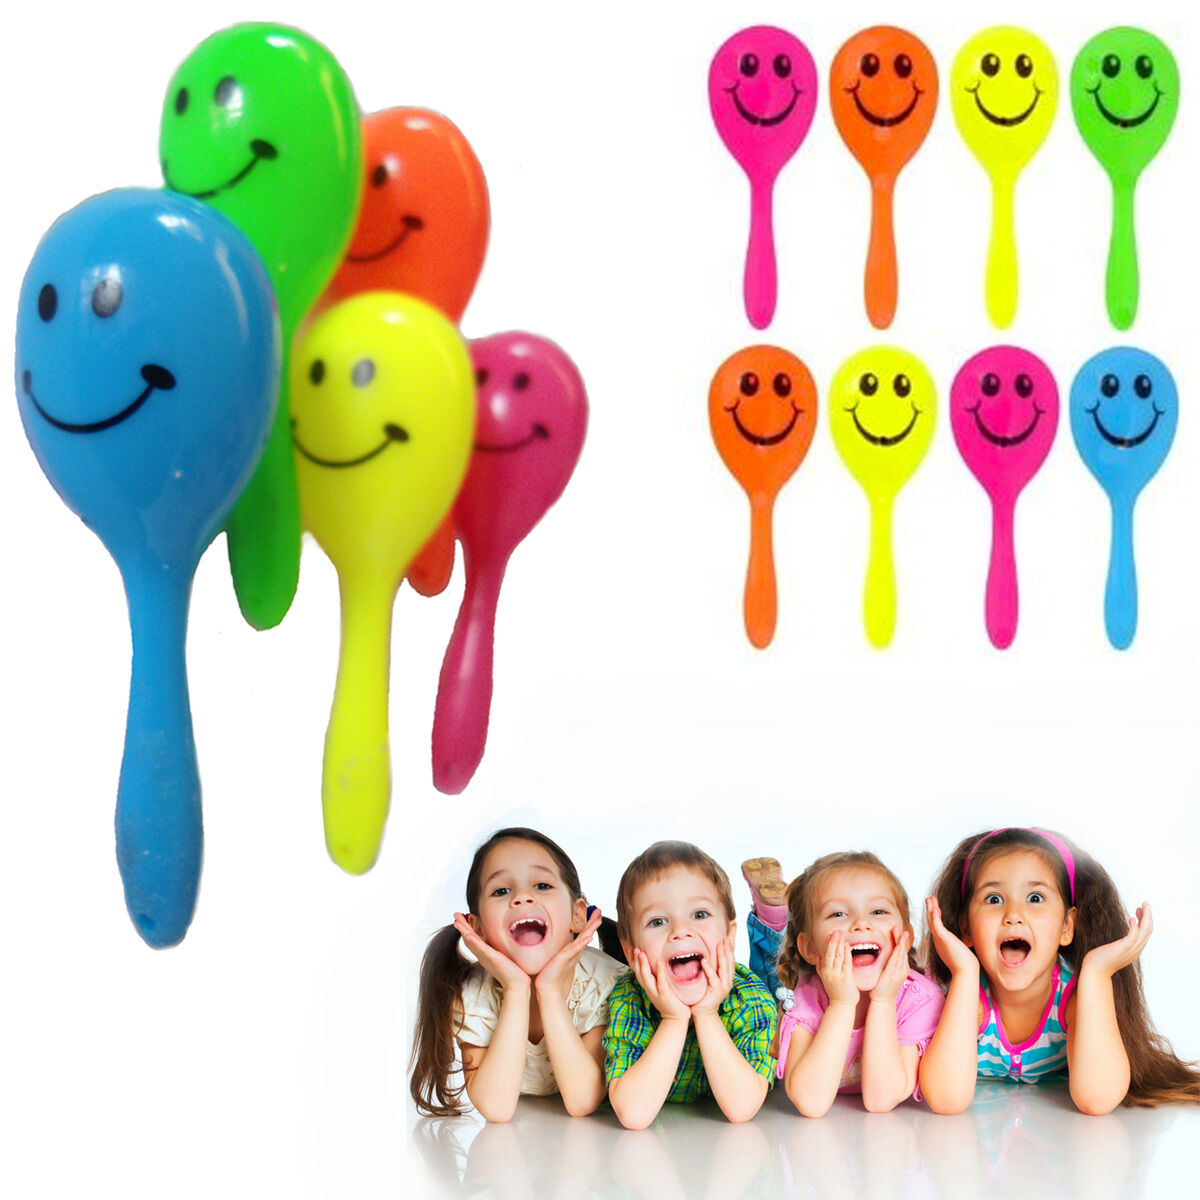 Rattle Maracas Hand Shaking Pair Shaker Smiley Kids Children's Sound Toy Music